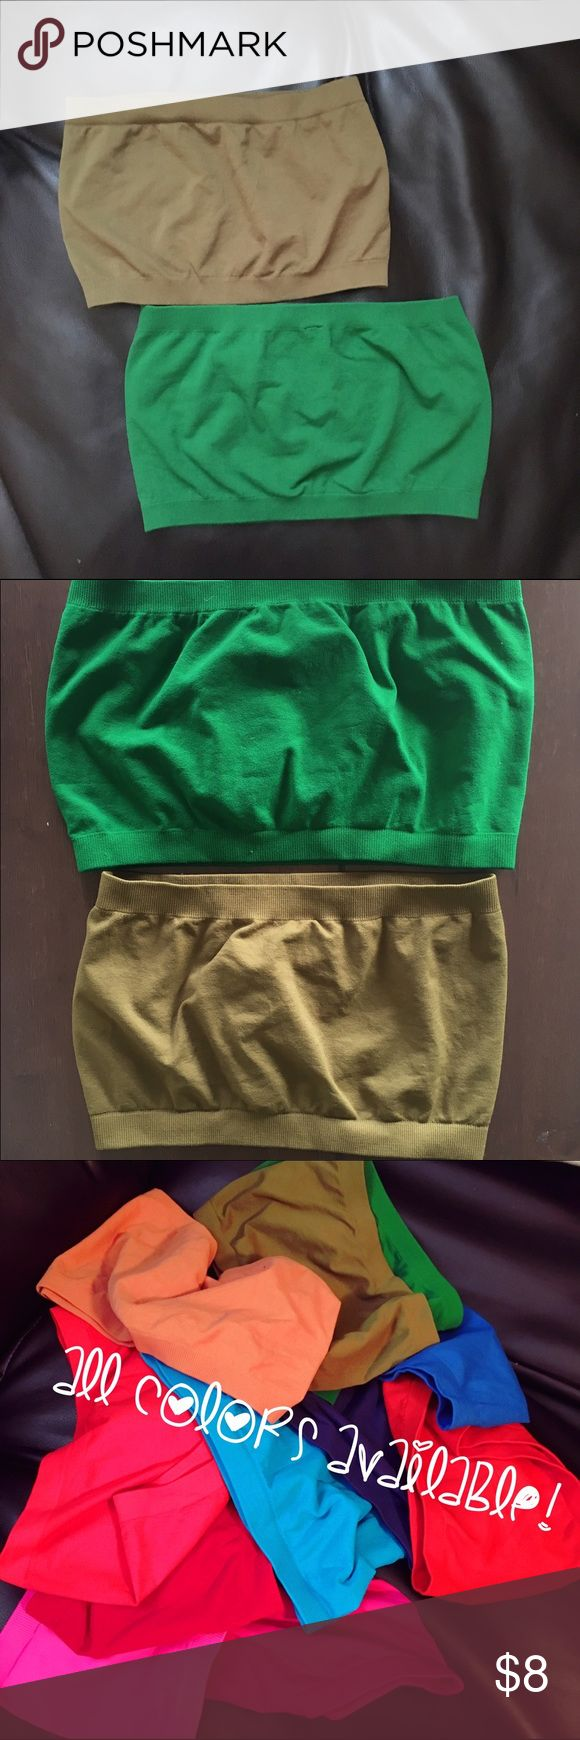 Like New Seamless Bandeau Tops! Army Green and Kelly Green bandeau tops! (You get both!) Also called boob-tubes 😂 perfect for under low cut shirt or with shirts with large arms!  Like new, never worn! Super stretchy: 92% Nylon, 8% Spandex!  No padding, just coverage. ❤ I have other colors, so bundle and save!!❤  sorry no trades! Intimates & Sleepwear Bandeaus